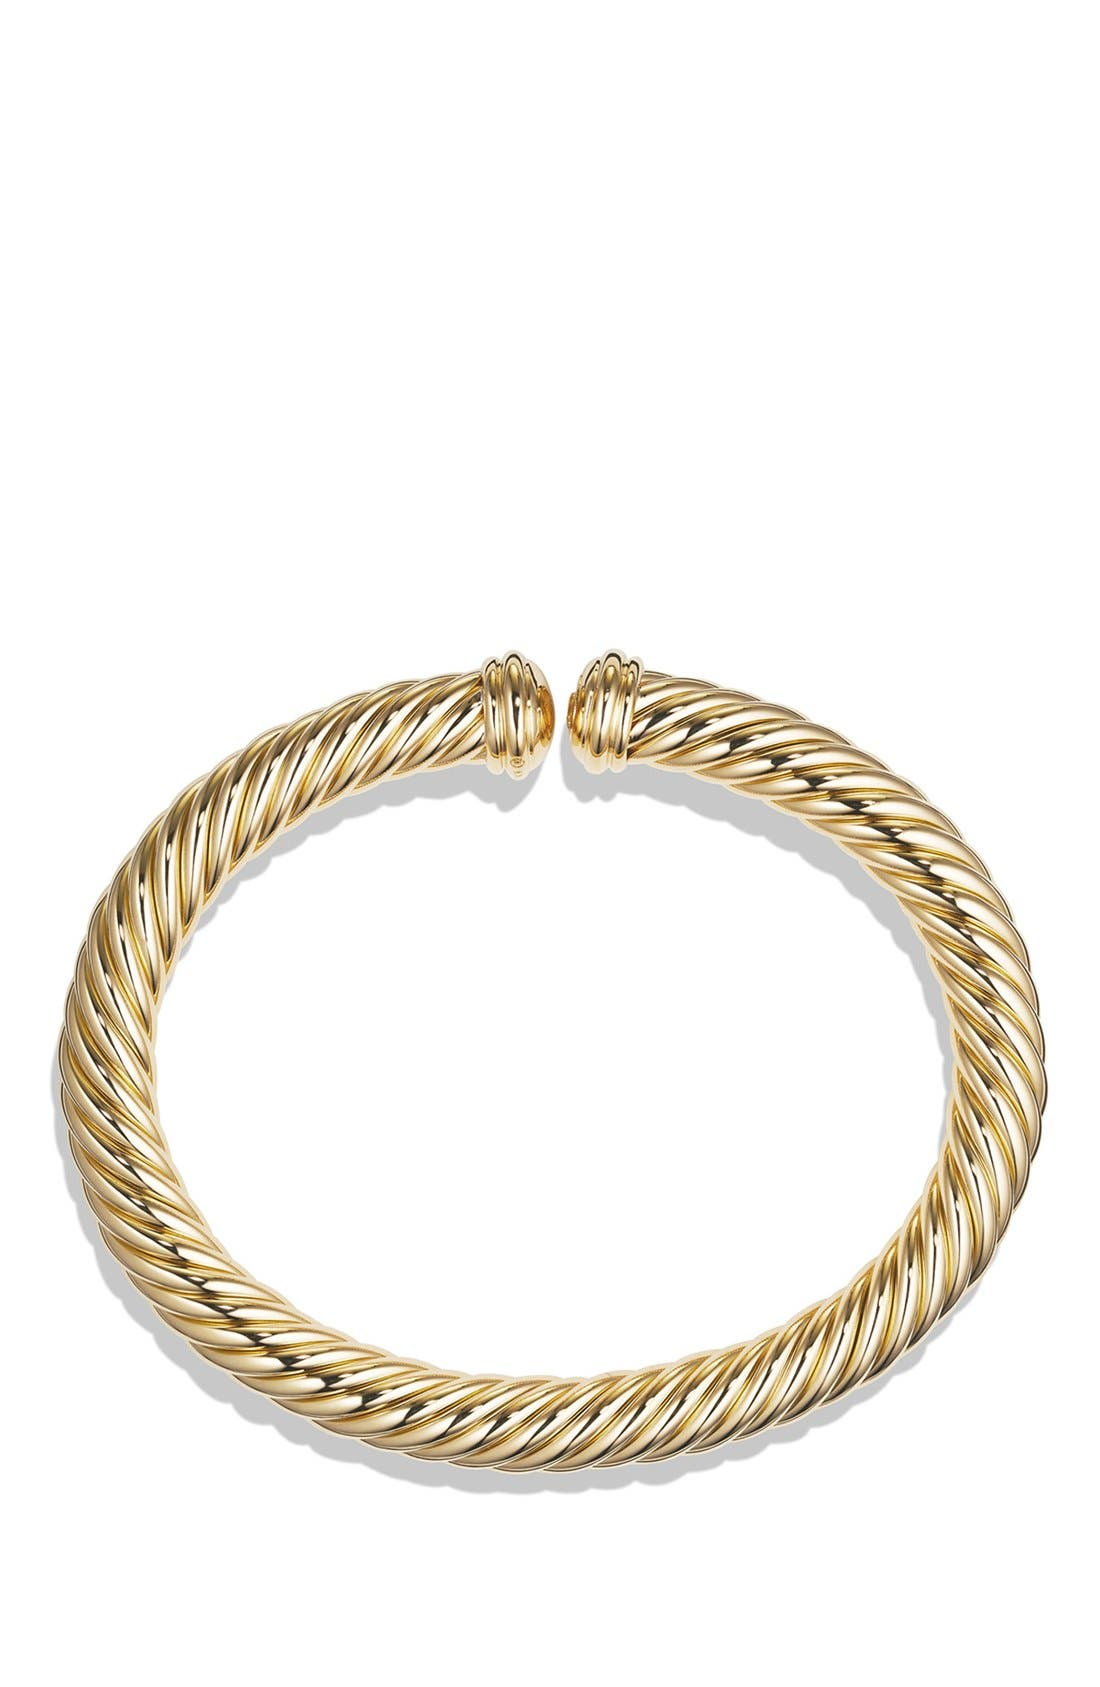 Cable Spira Bracelet in 18K Gold, 7mm,                             Alternate thumbnail 2, color,                             Yellow Gold